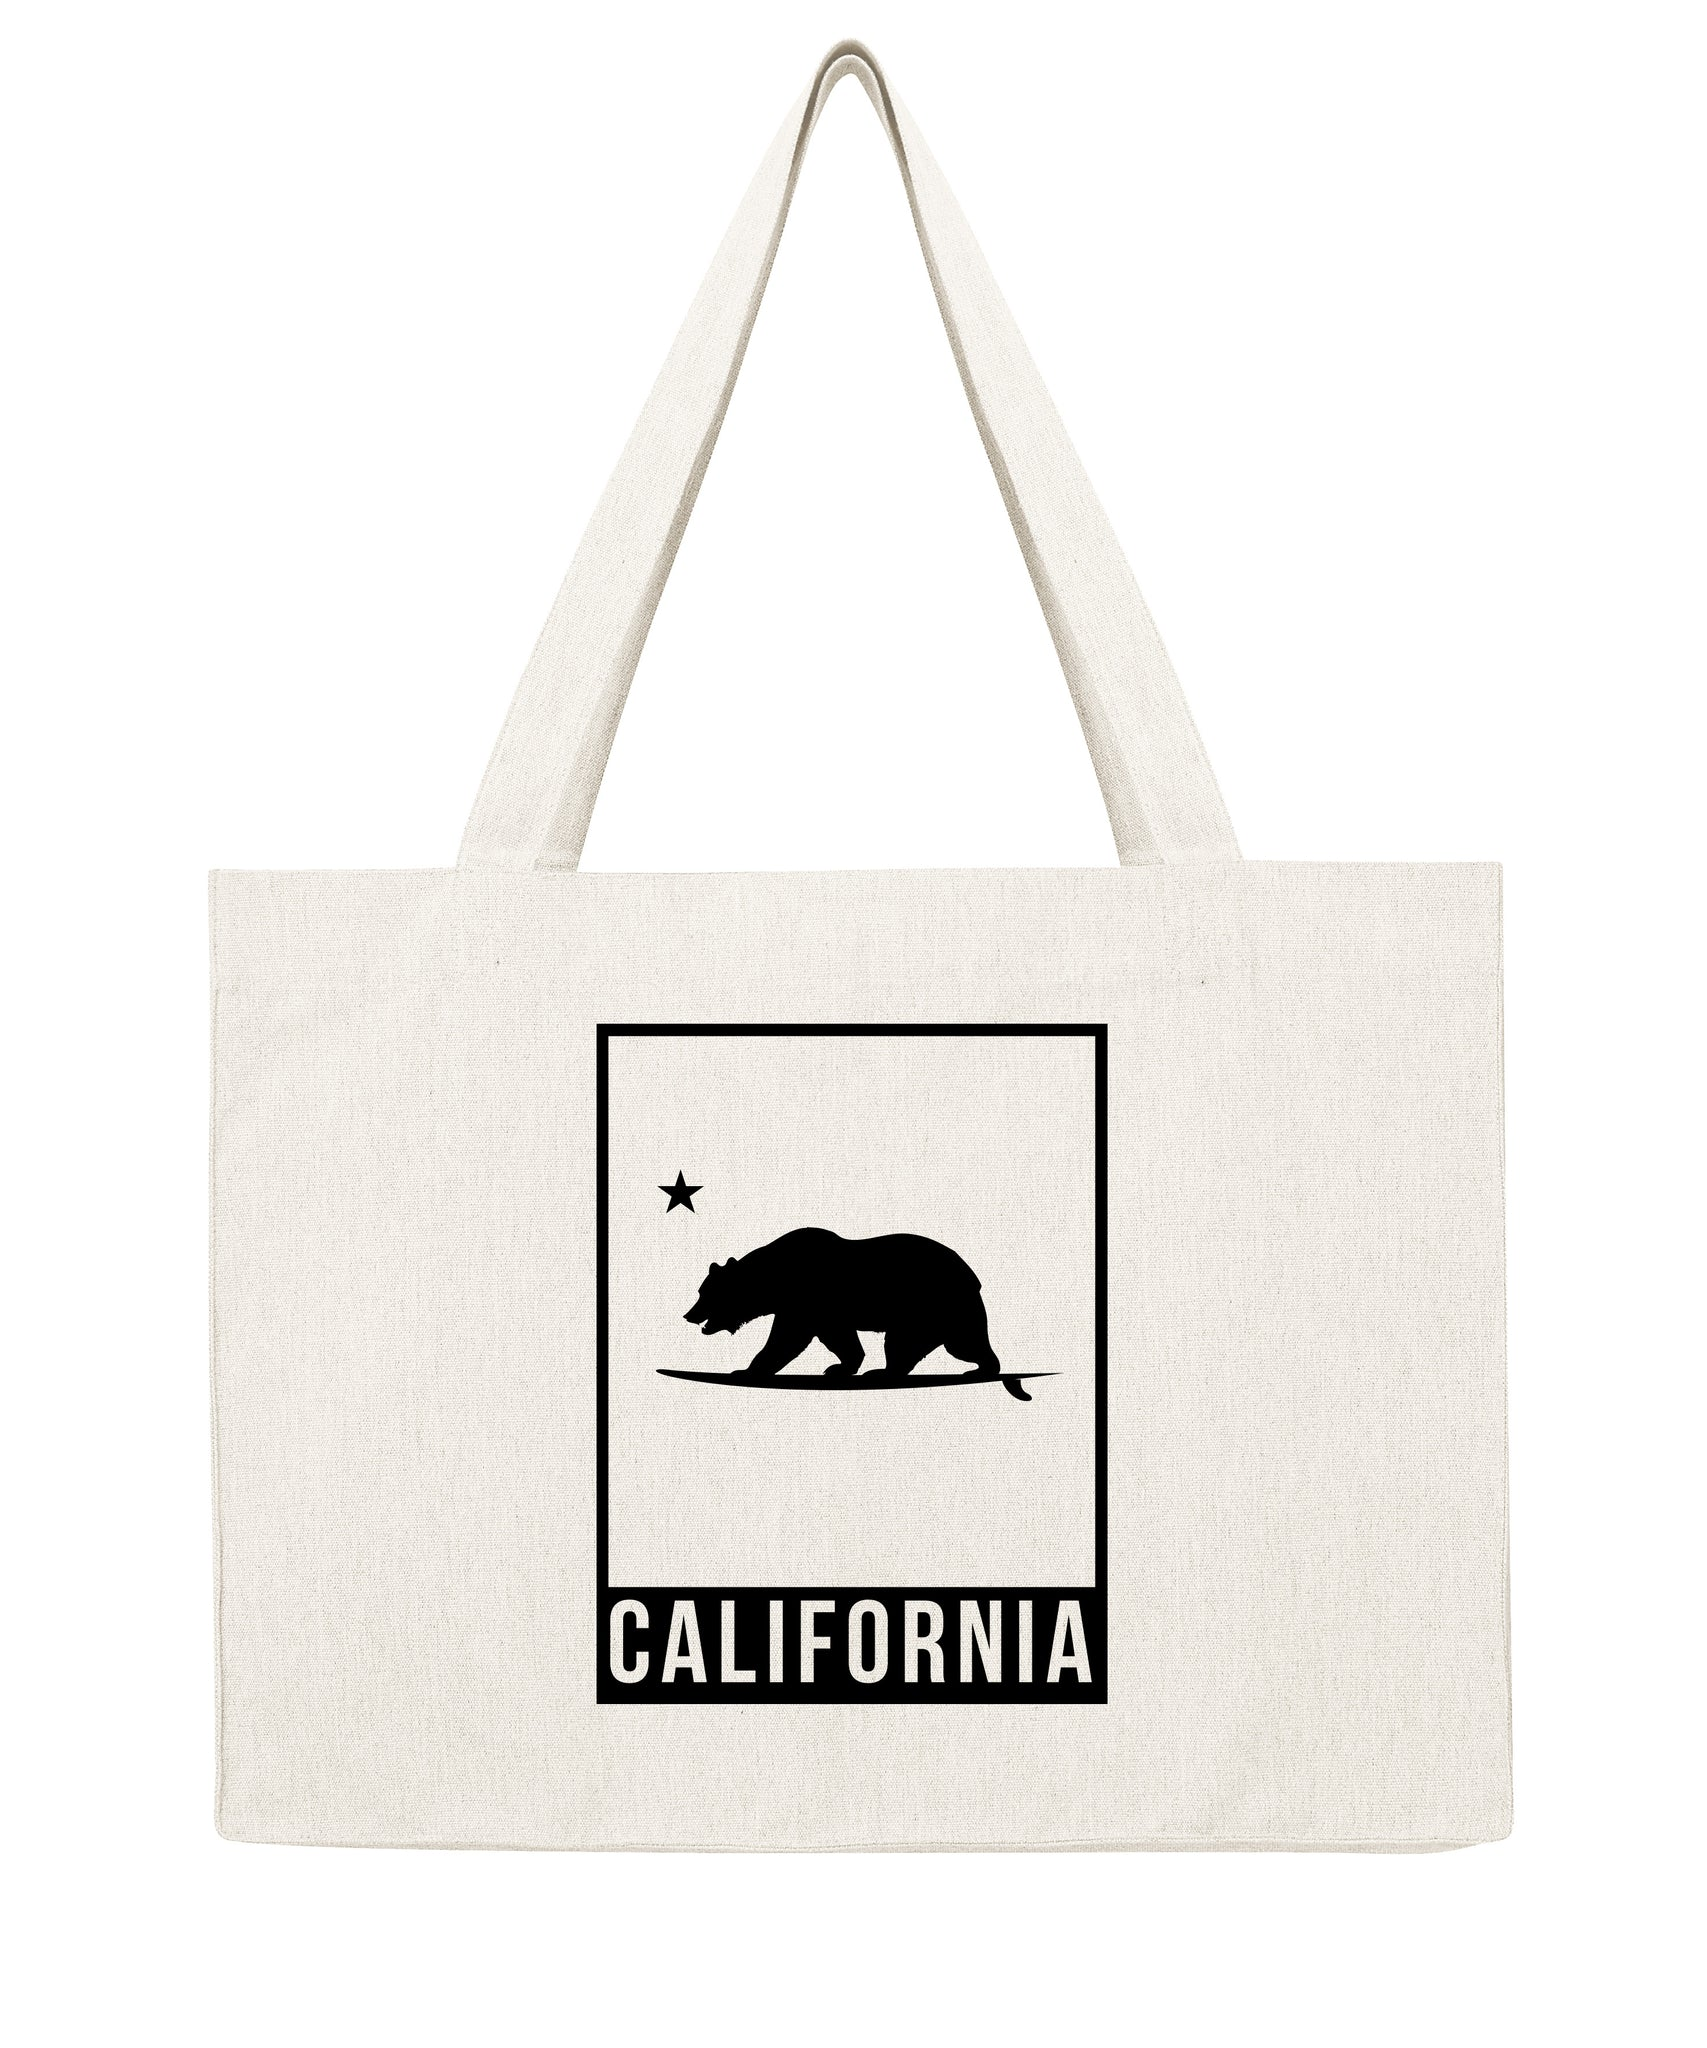 California Bear cadre - Shopping bag-Sacs-Atelier Amelot